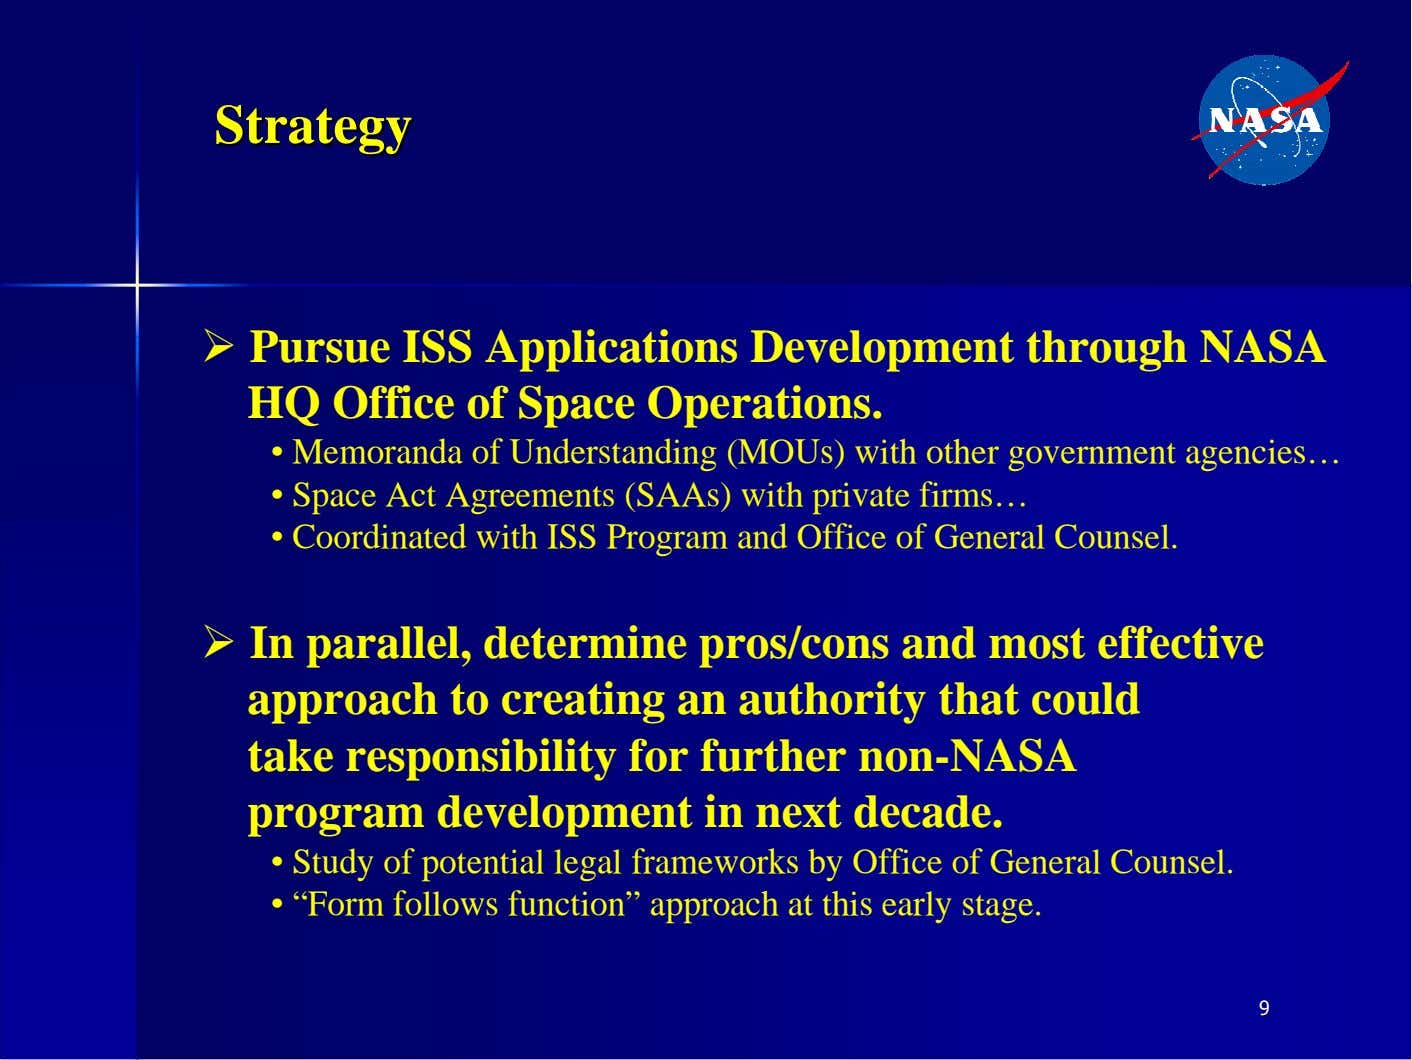 SSttrraatteeggyy � Pursue ISS Applications Development through NASA HQ Office of Space Operations. • Memoranda